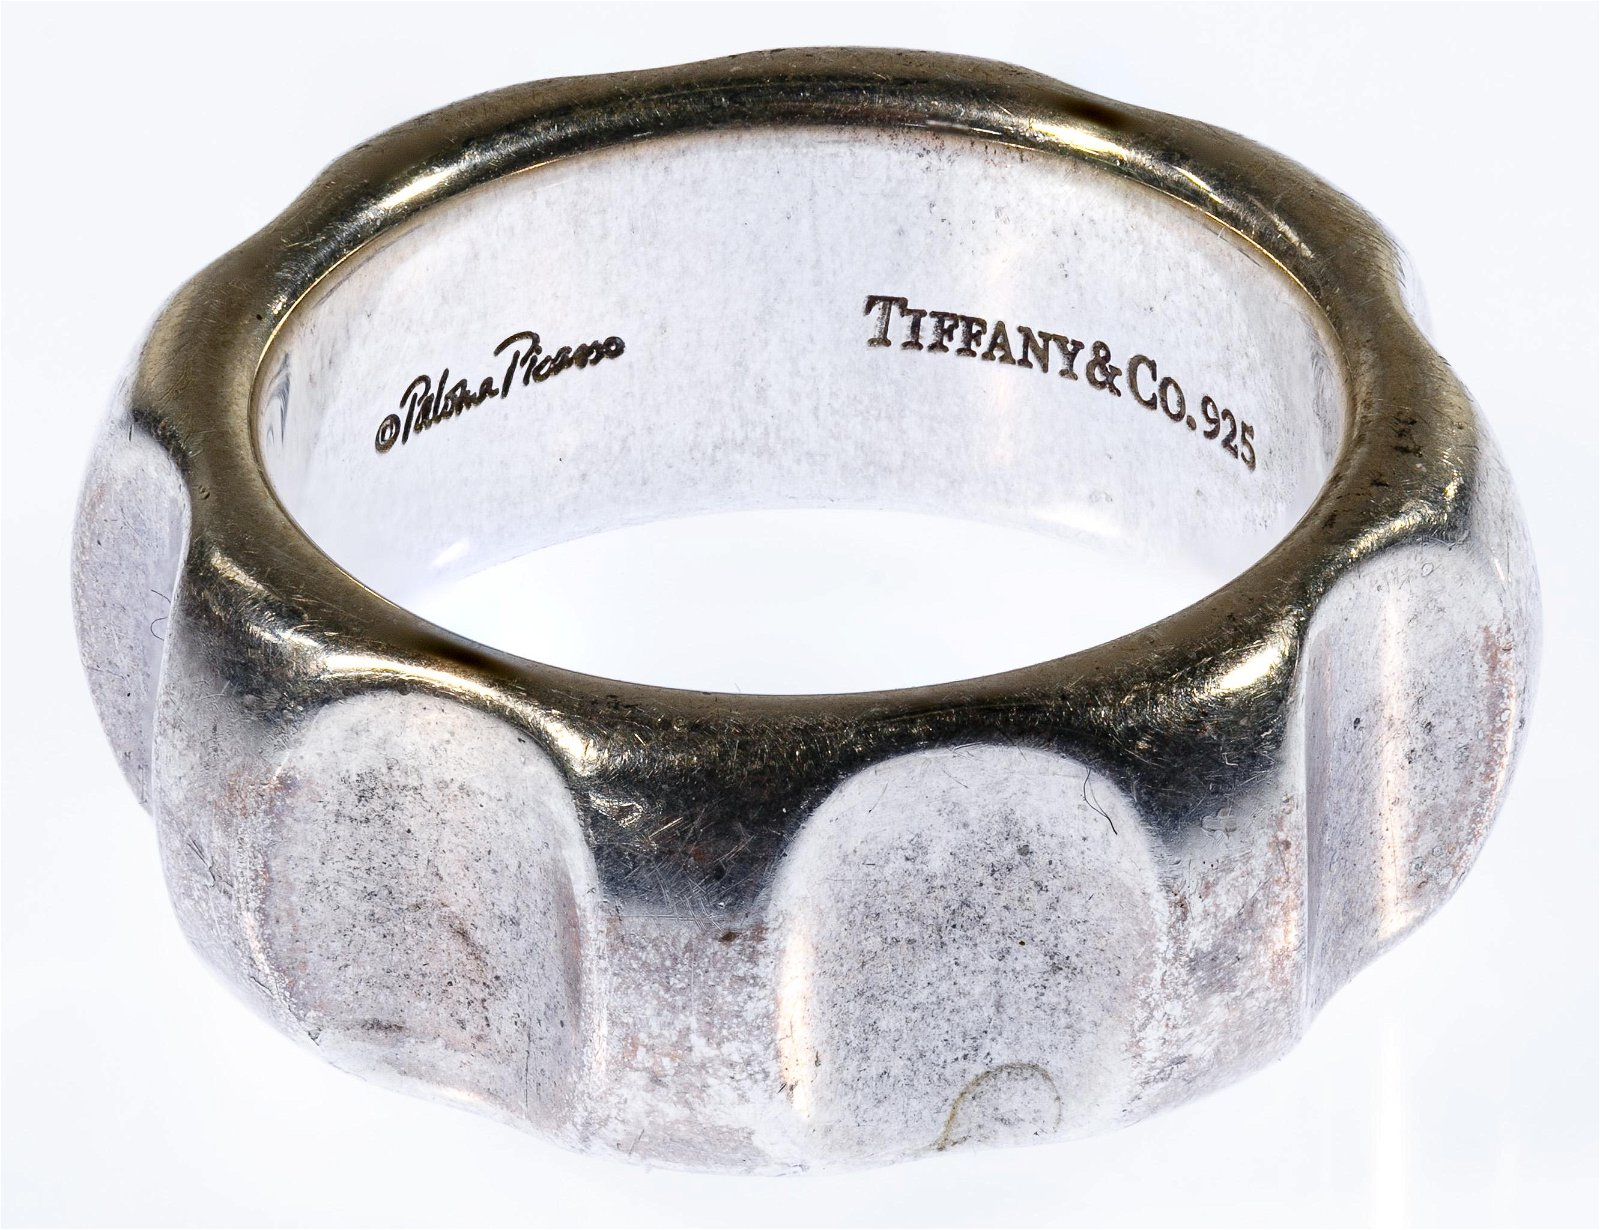 Tiffany & Co. Paloma Picasso Sterling Silver Groove